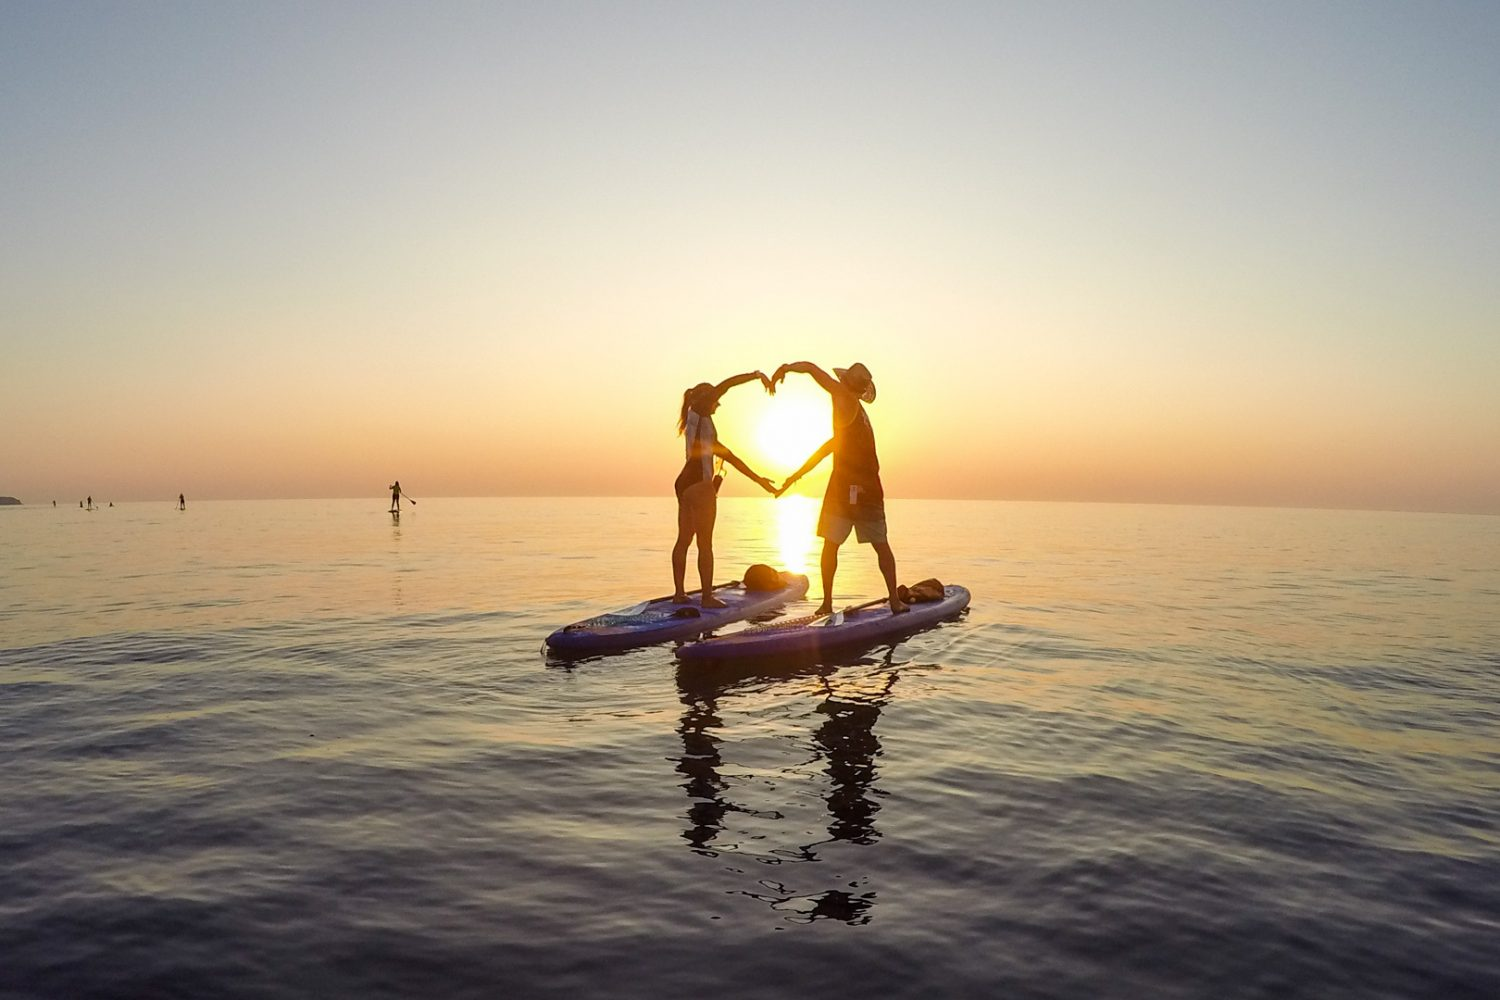 Stand Up Paddle boarding in sunset